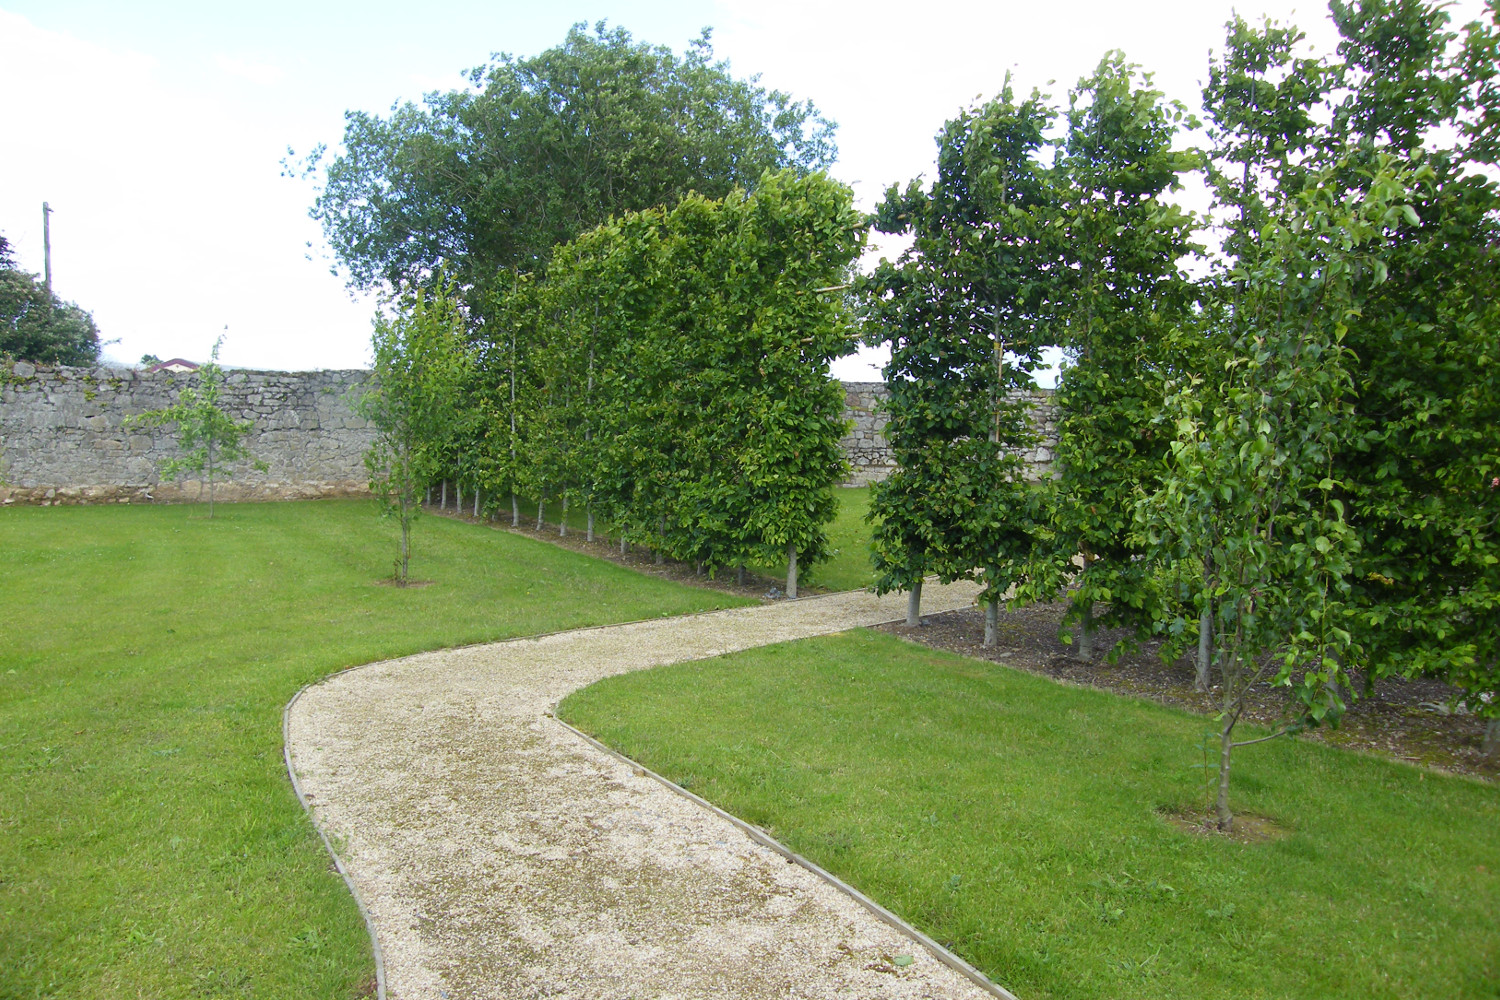 tim-austen-garden-design-rural-garden-cahir-tipperary-11